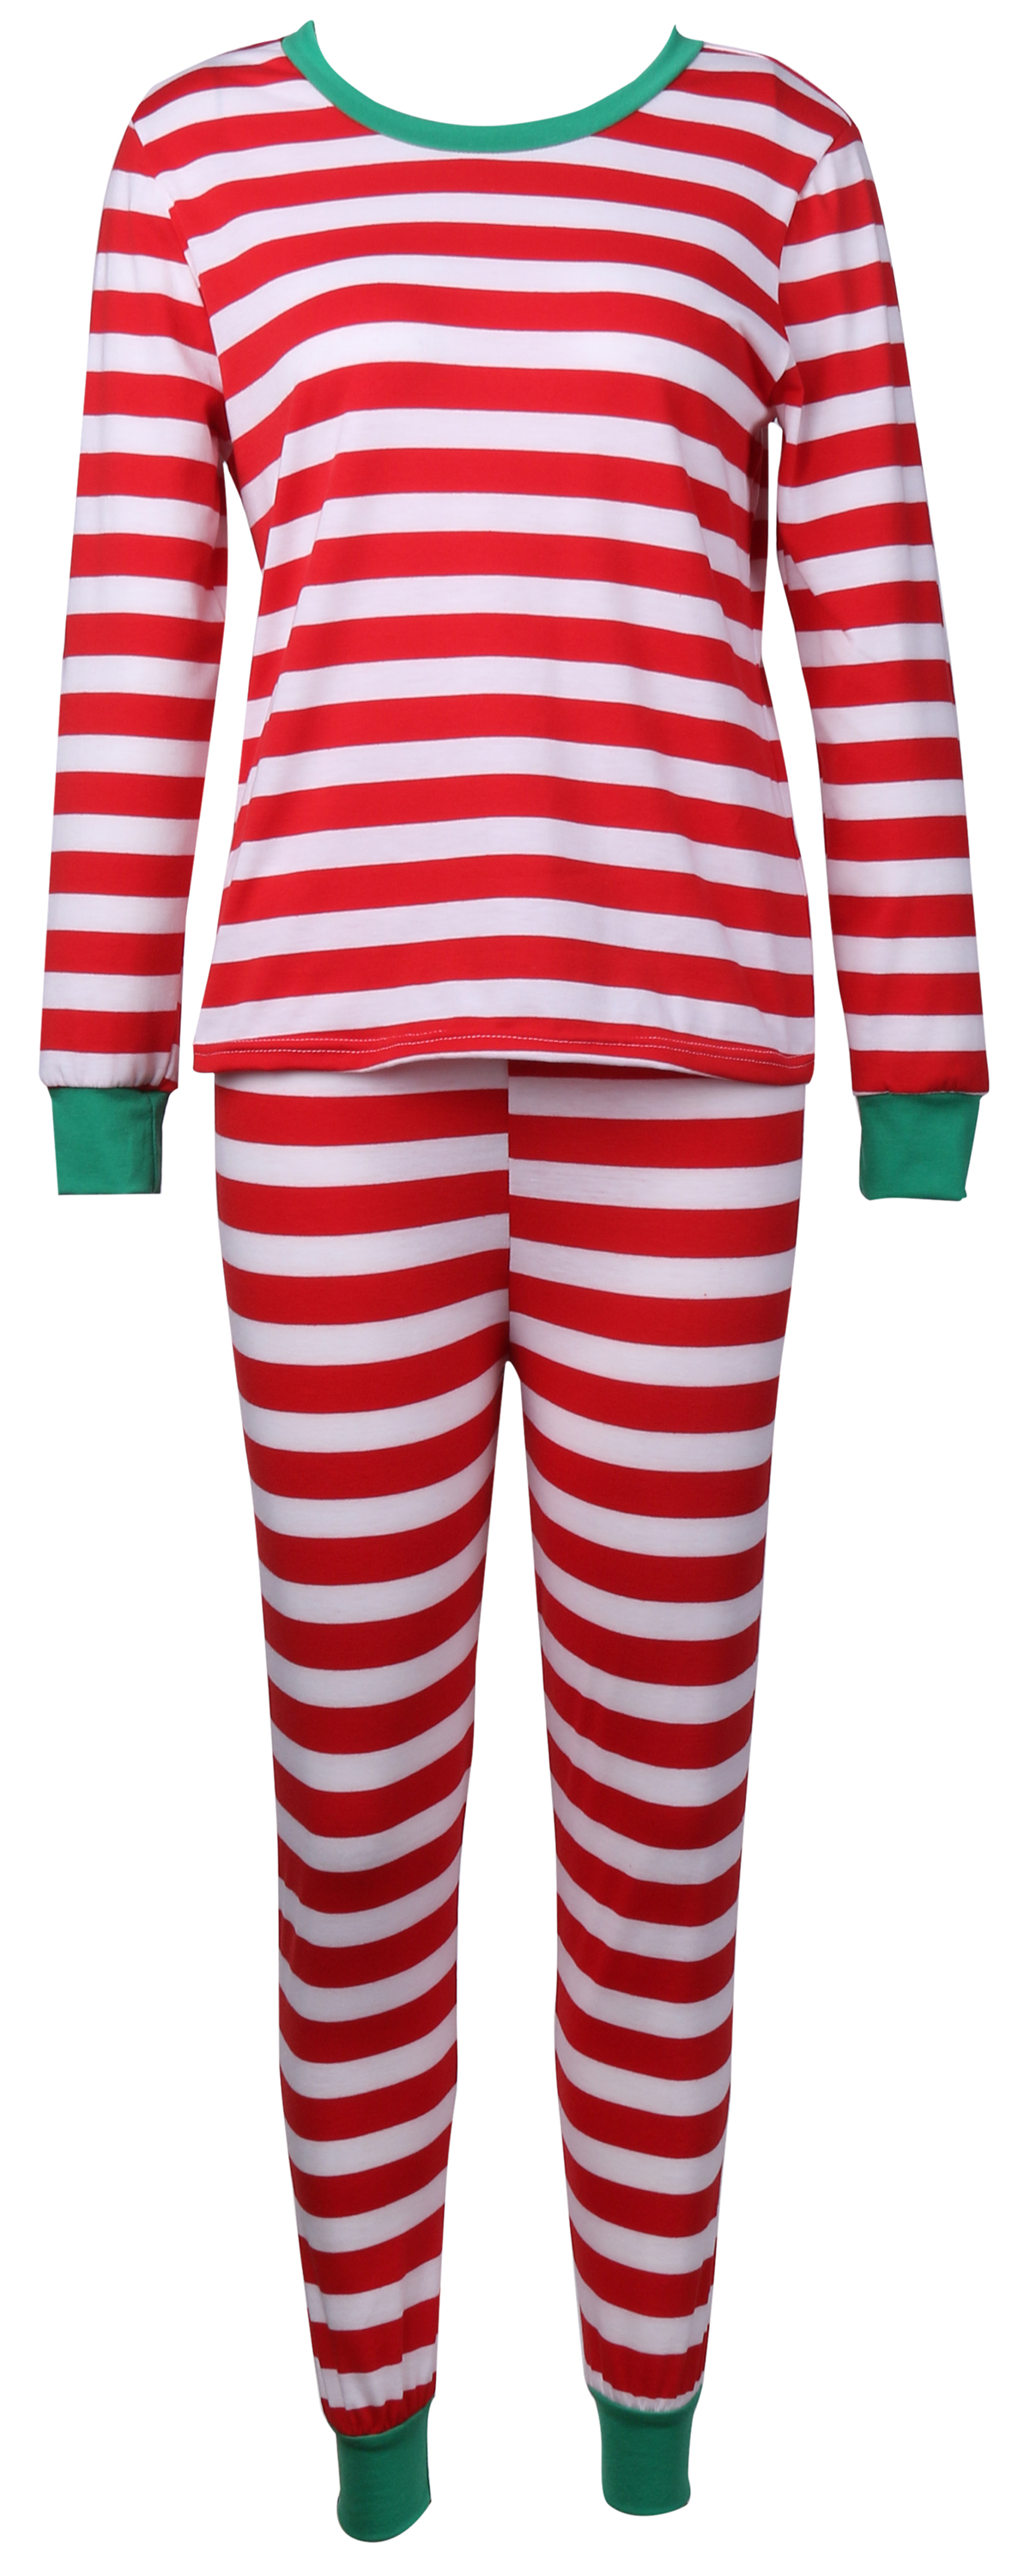 NEW Arrivals Womens Mens Unisex Pyjamas Christmas Xmas Pajamas Adult Set Cotton Nightwear Sleepwear(without kids set)